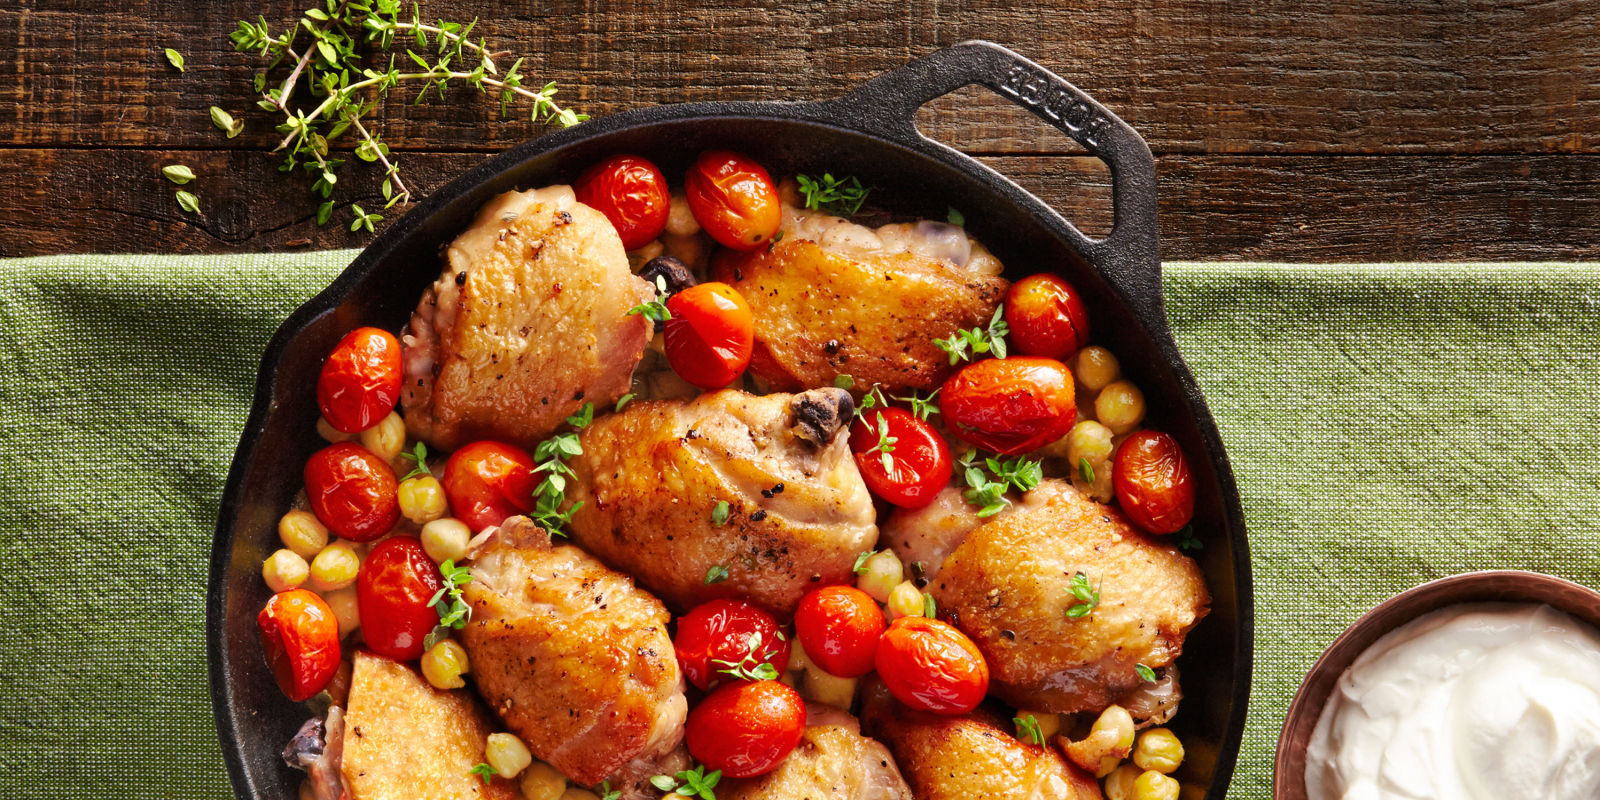 chicken for dinner Explore dinner ideas that everyone is searching for kraft has dinner recipes in every category imaginable you can choose from chicken, casseroles, veggie sides, salads and oh-so-many more delectable dinner ideas.